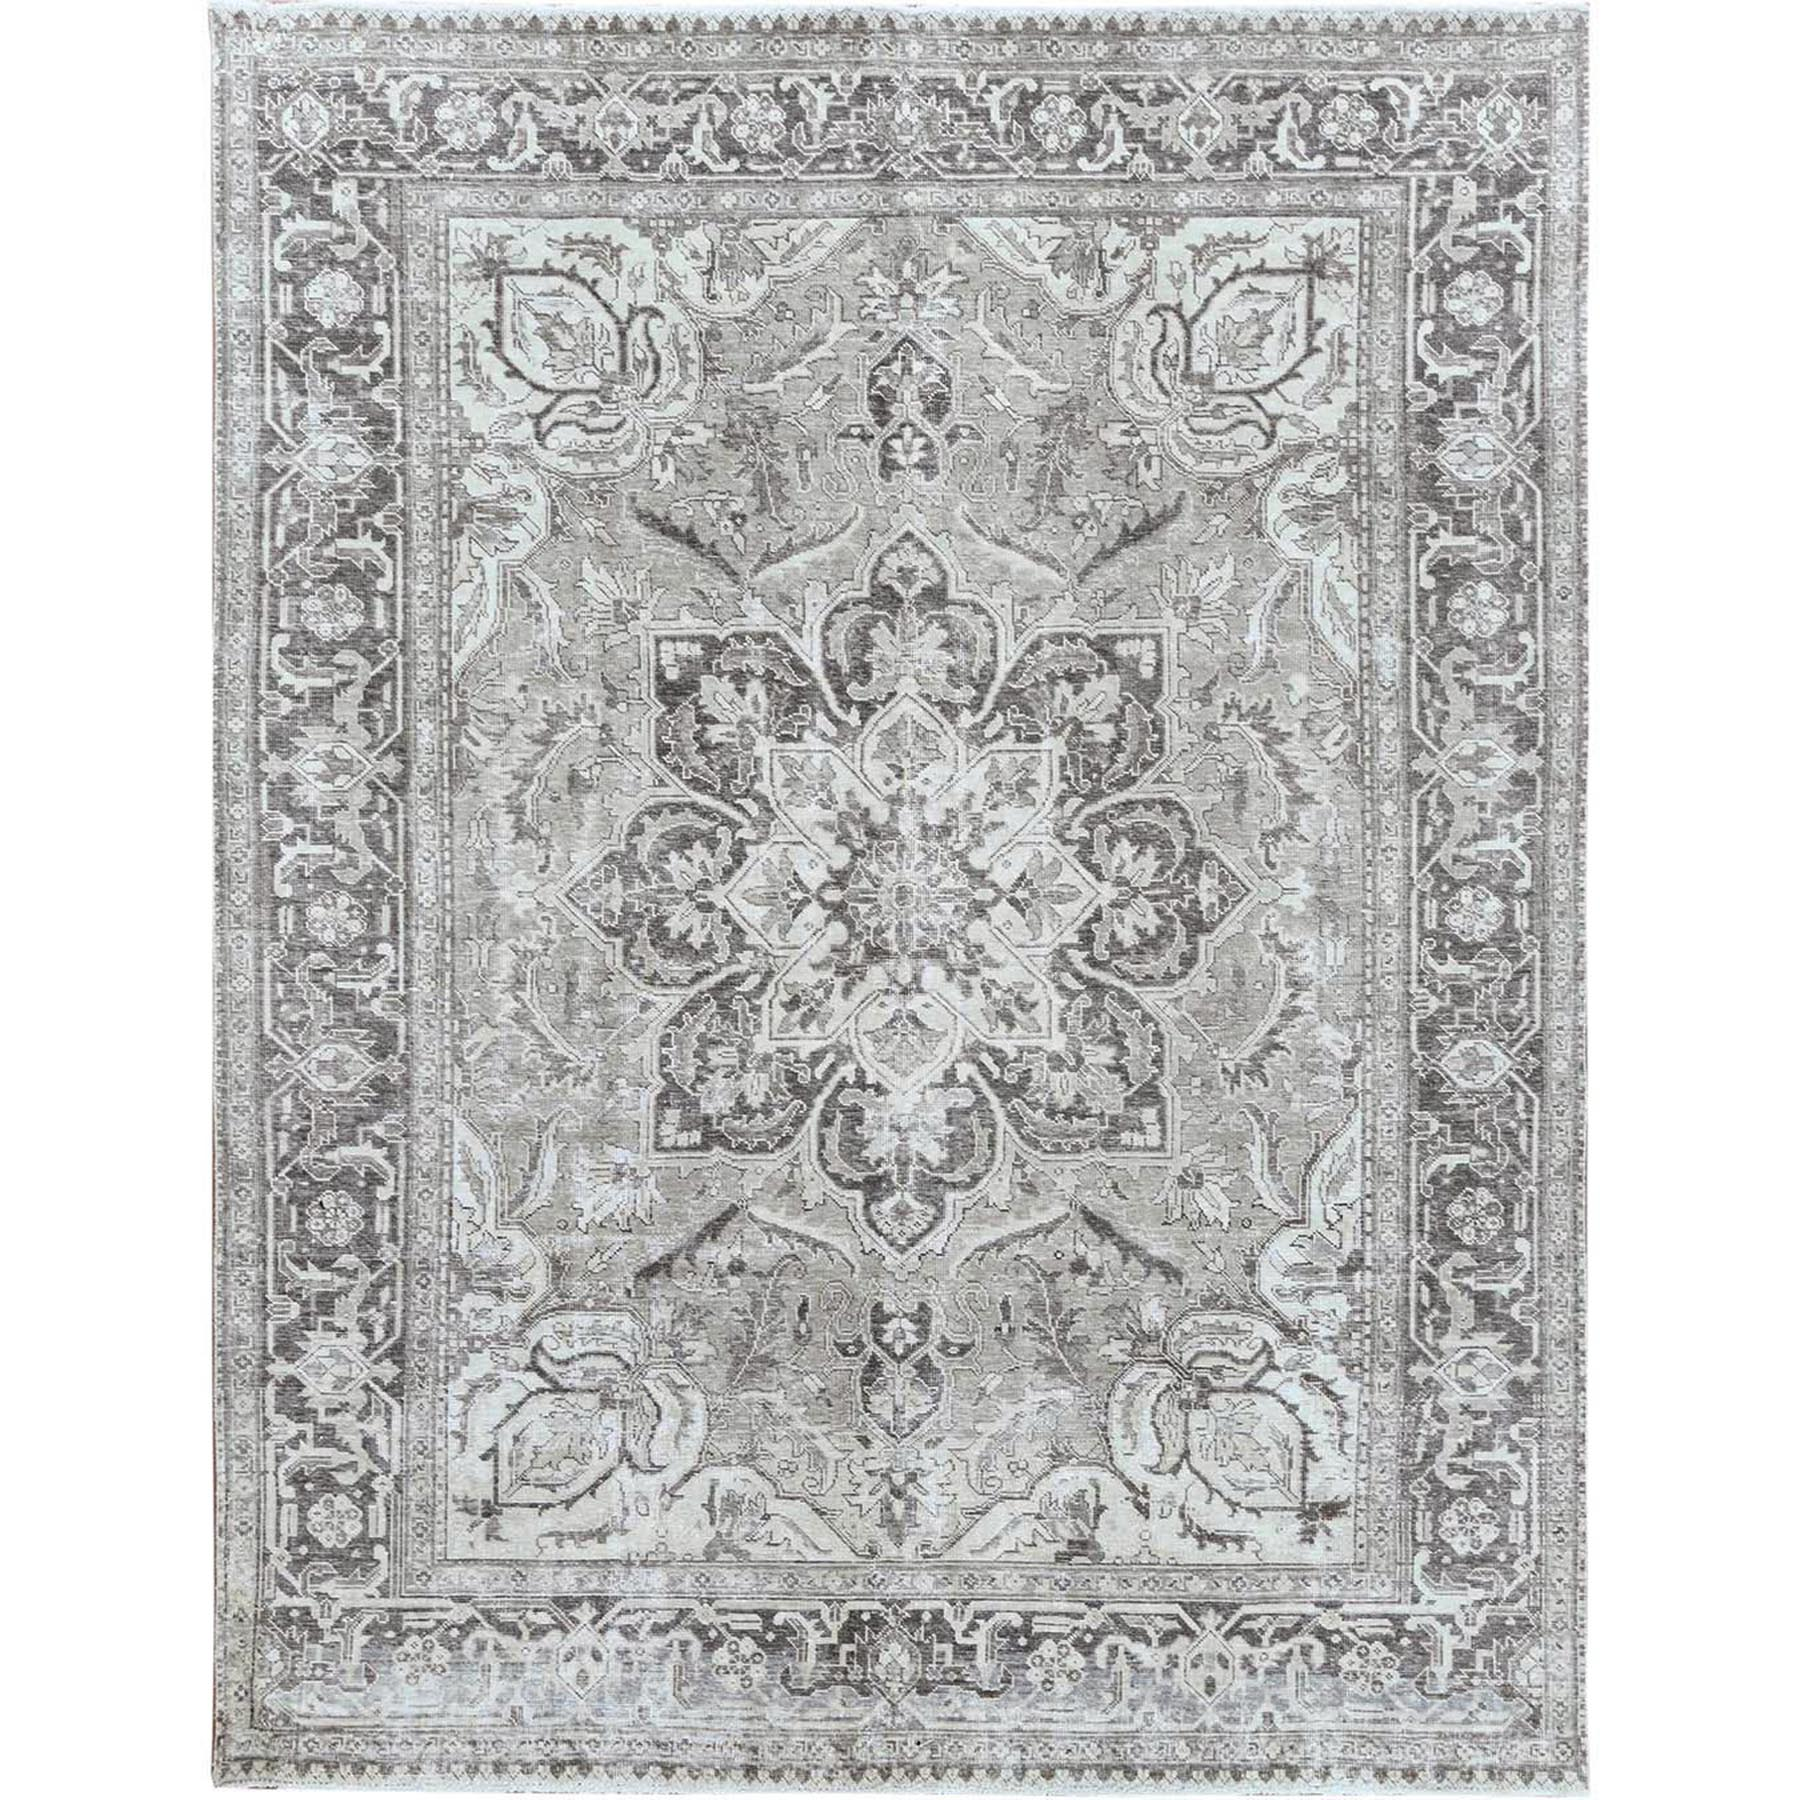 "9'3""x12' Washed Out Gray Persian Heriz Vintage Worn Down Organic Wool Hand Woven Oriental Rug"